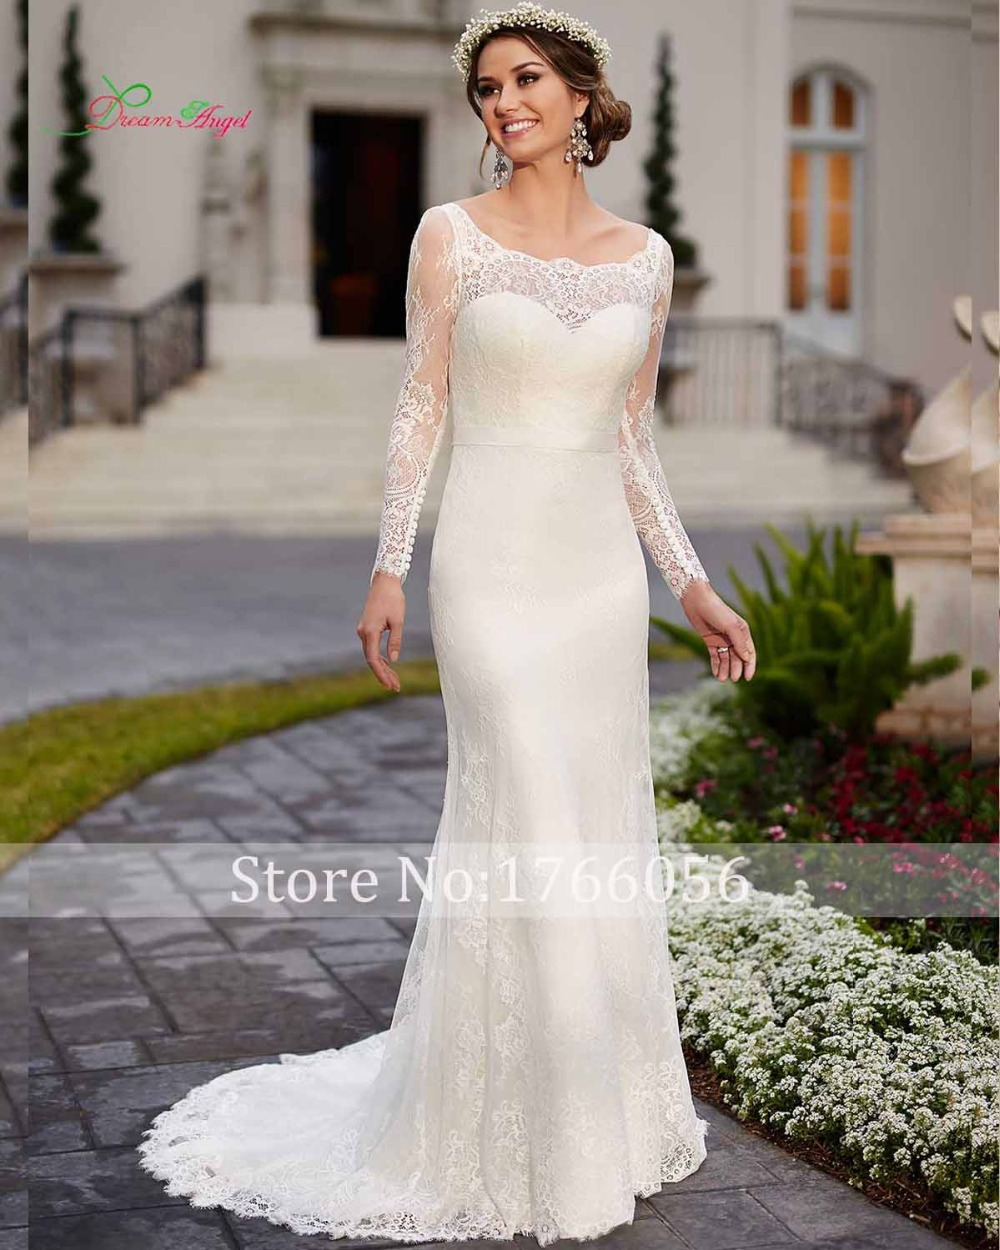 Long sleeve sheath wedding dress ejn dress for Long wedding dresses with sleeves